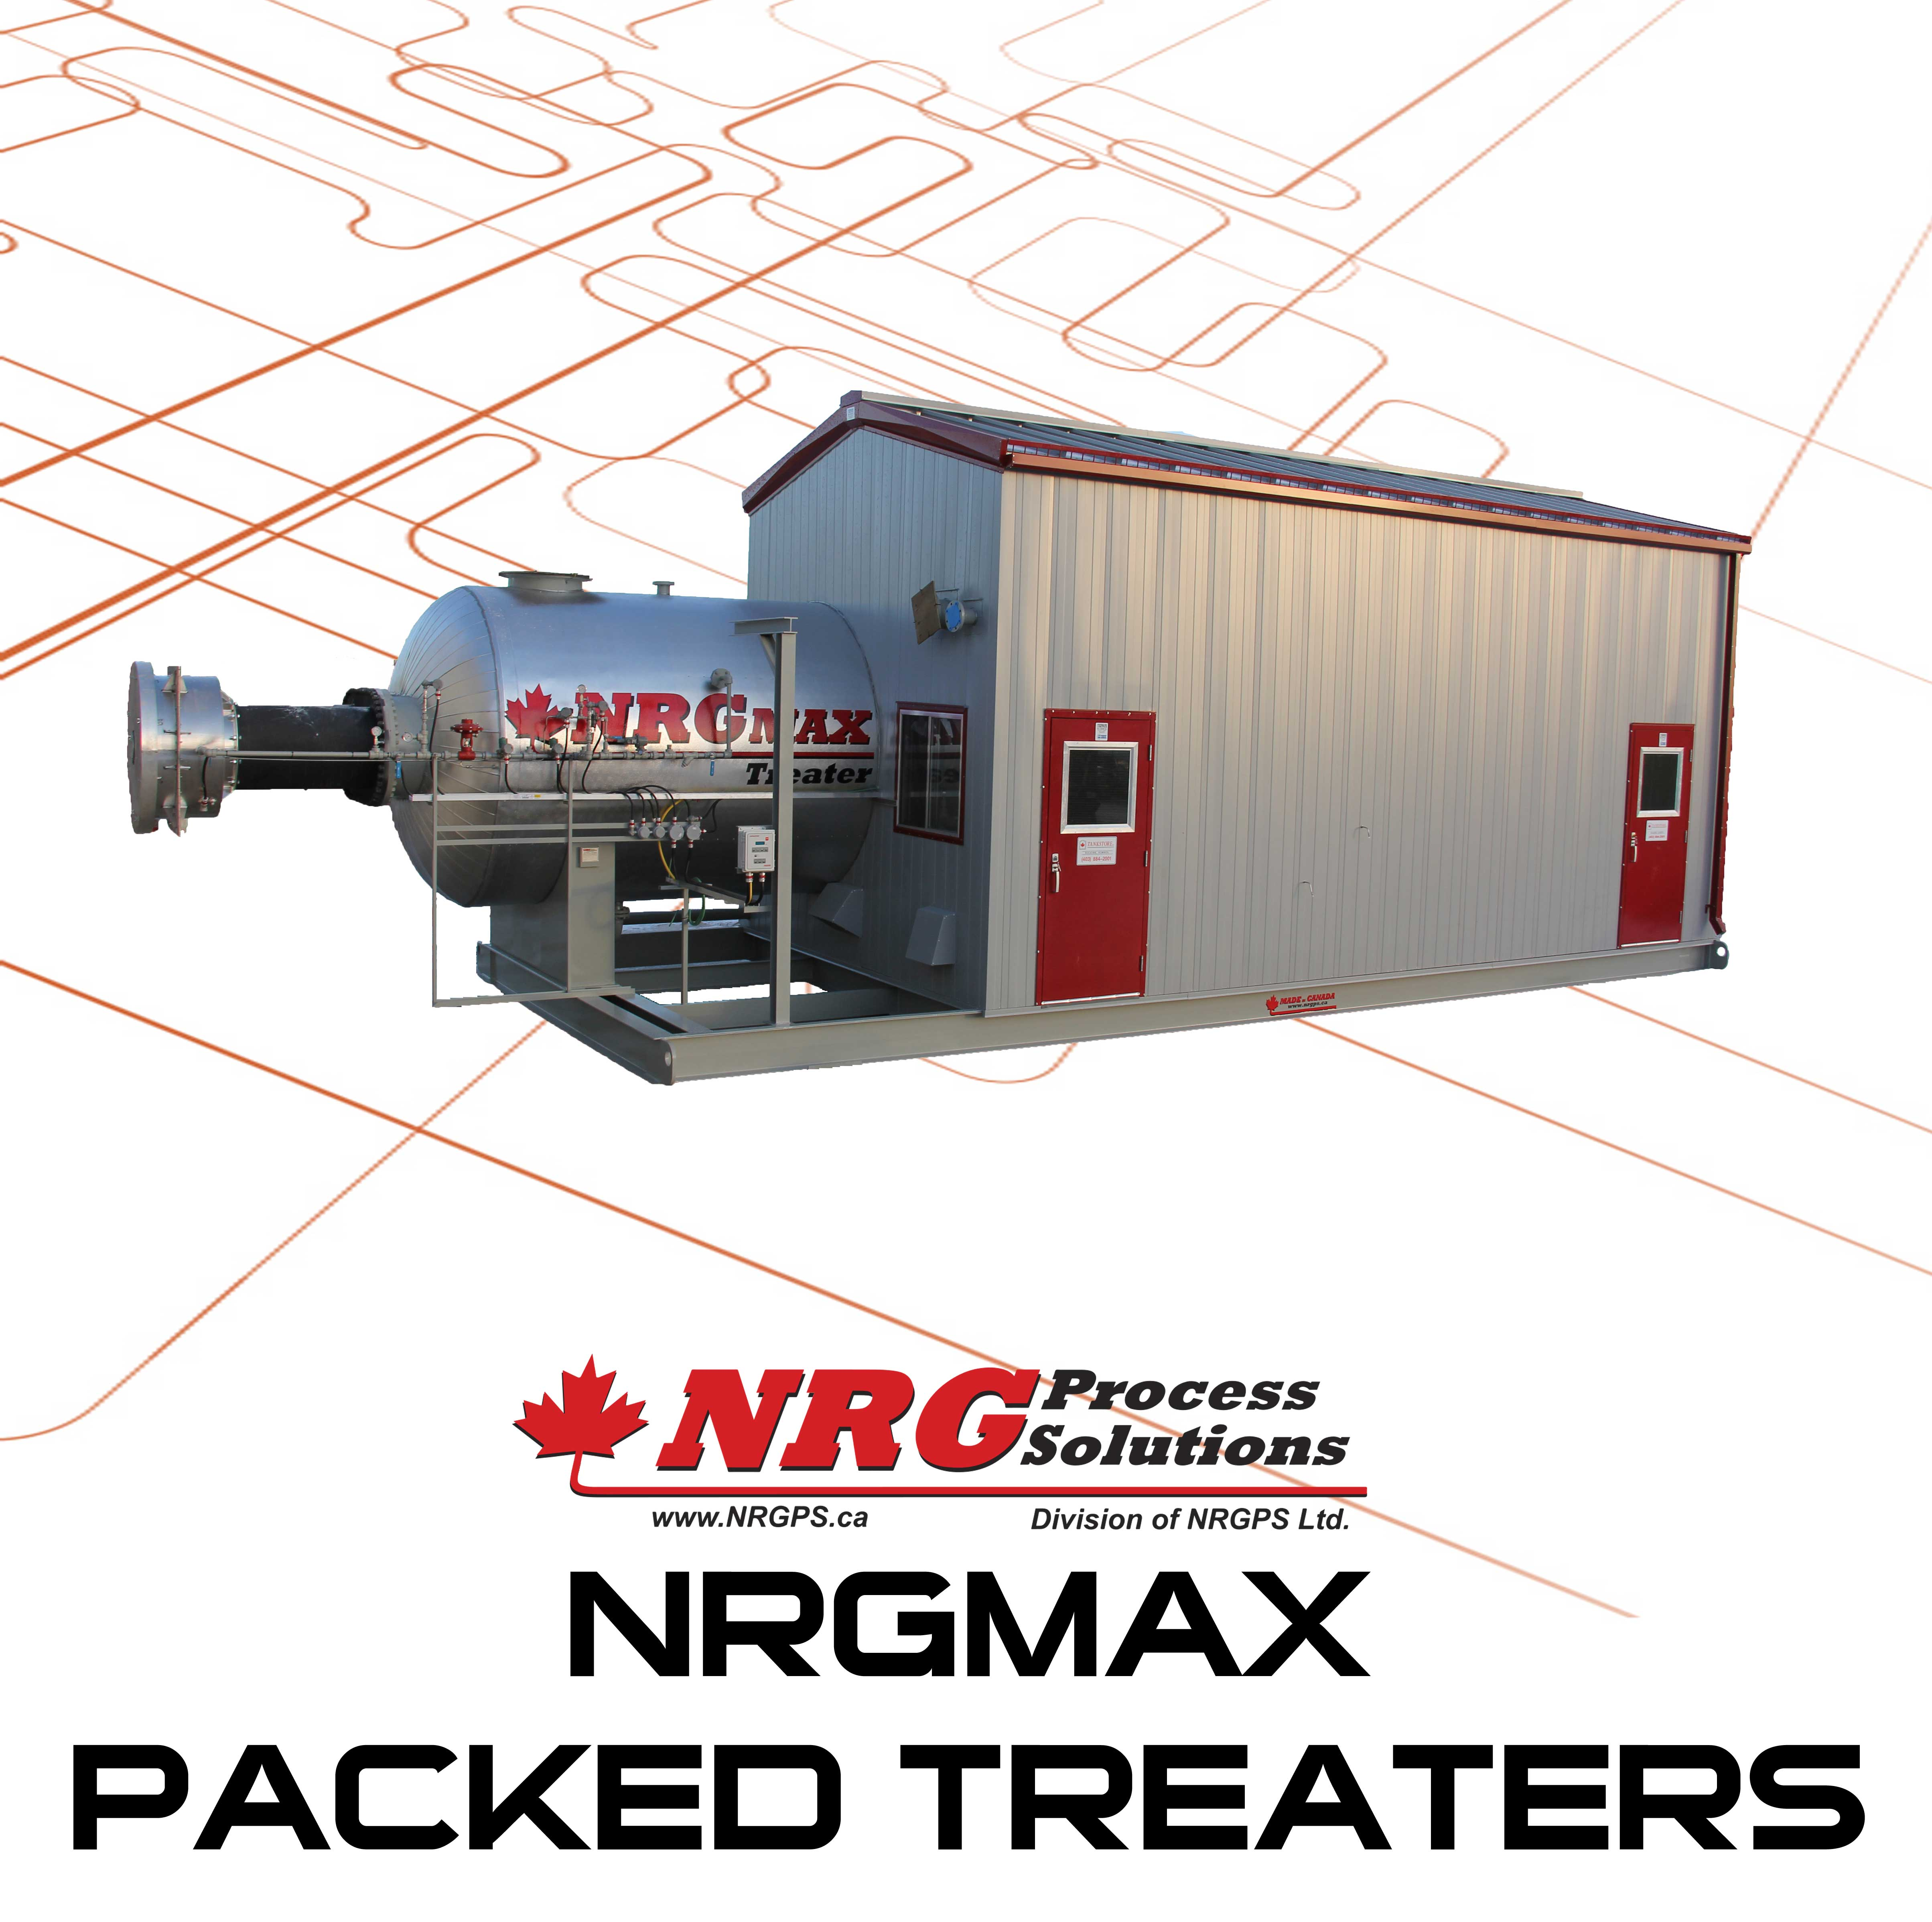 NRGMAX-Packed-Treaters-Button